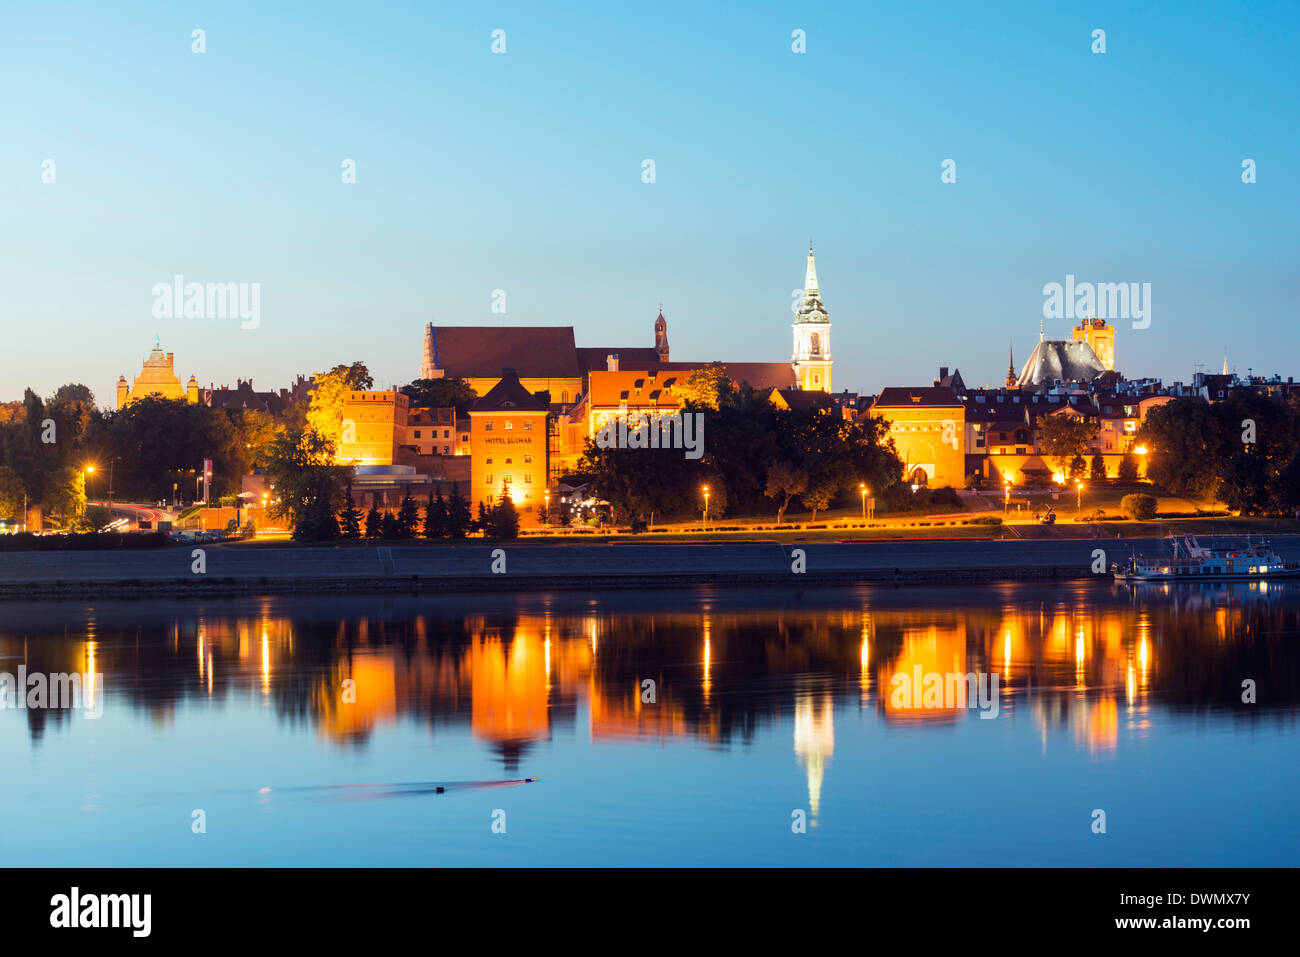 Europe, Poland, Gdansk and Pomerania, Torun, Unesco Medieval Old Town, Vistula River - Stock Image